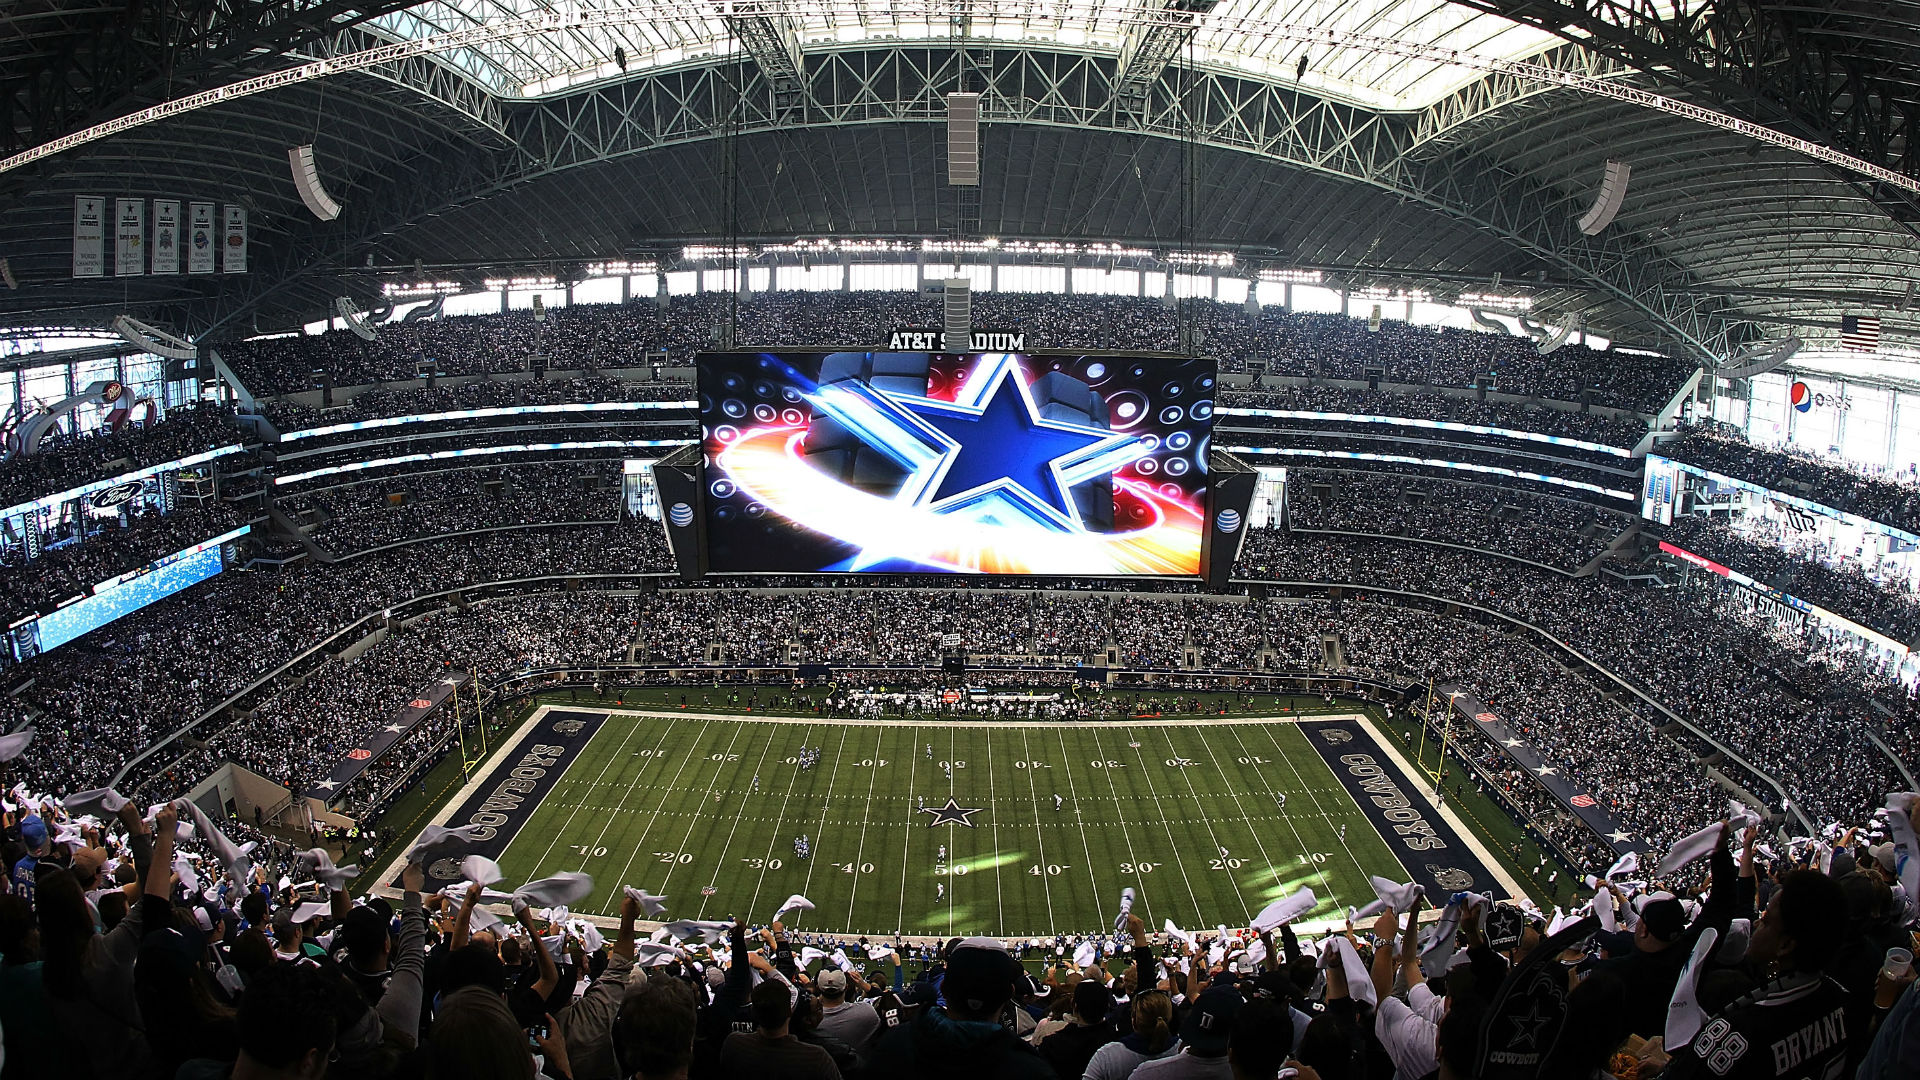 Cowboys to host sleepover for underprivileged kids at att stadium cowboys to host sleepover for underprivileged kids at att stadium nfl sporting news voltagebd Image collections